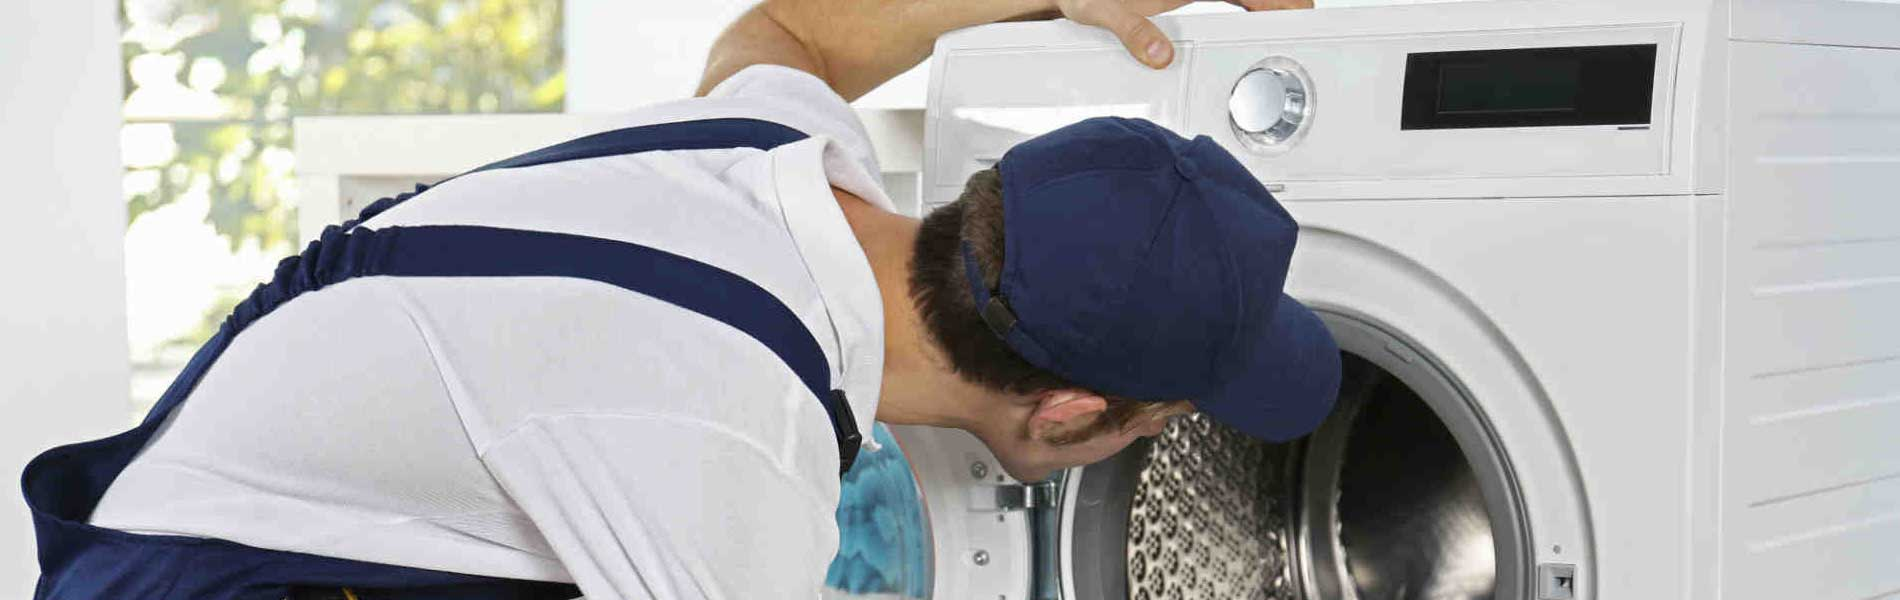 Whirlpool Washing Machine Service in Mogappair East